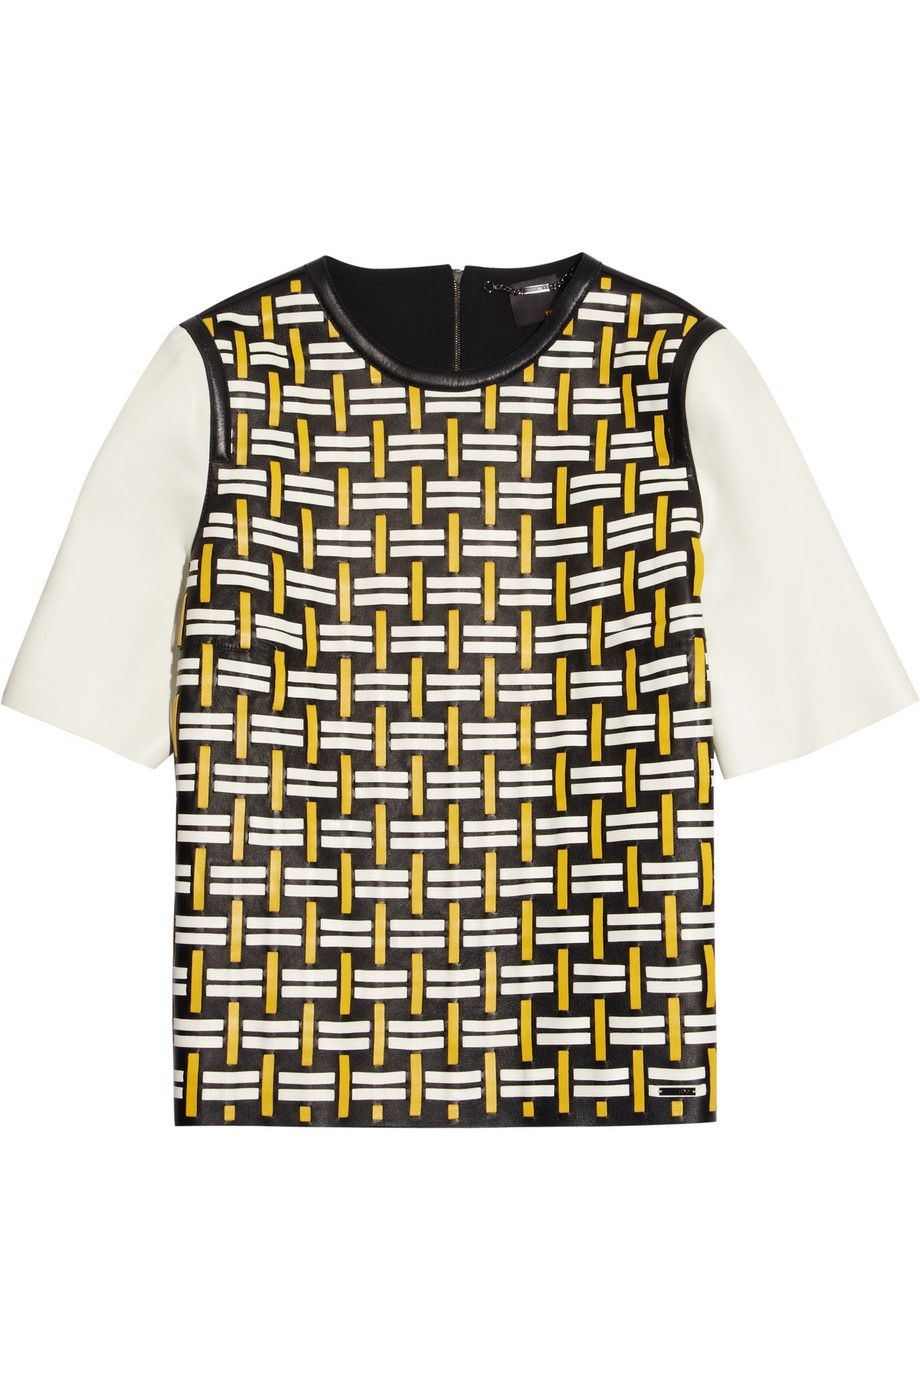 Fendi | Woven leather top | NET-A-PORTER.COM